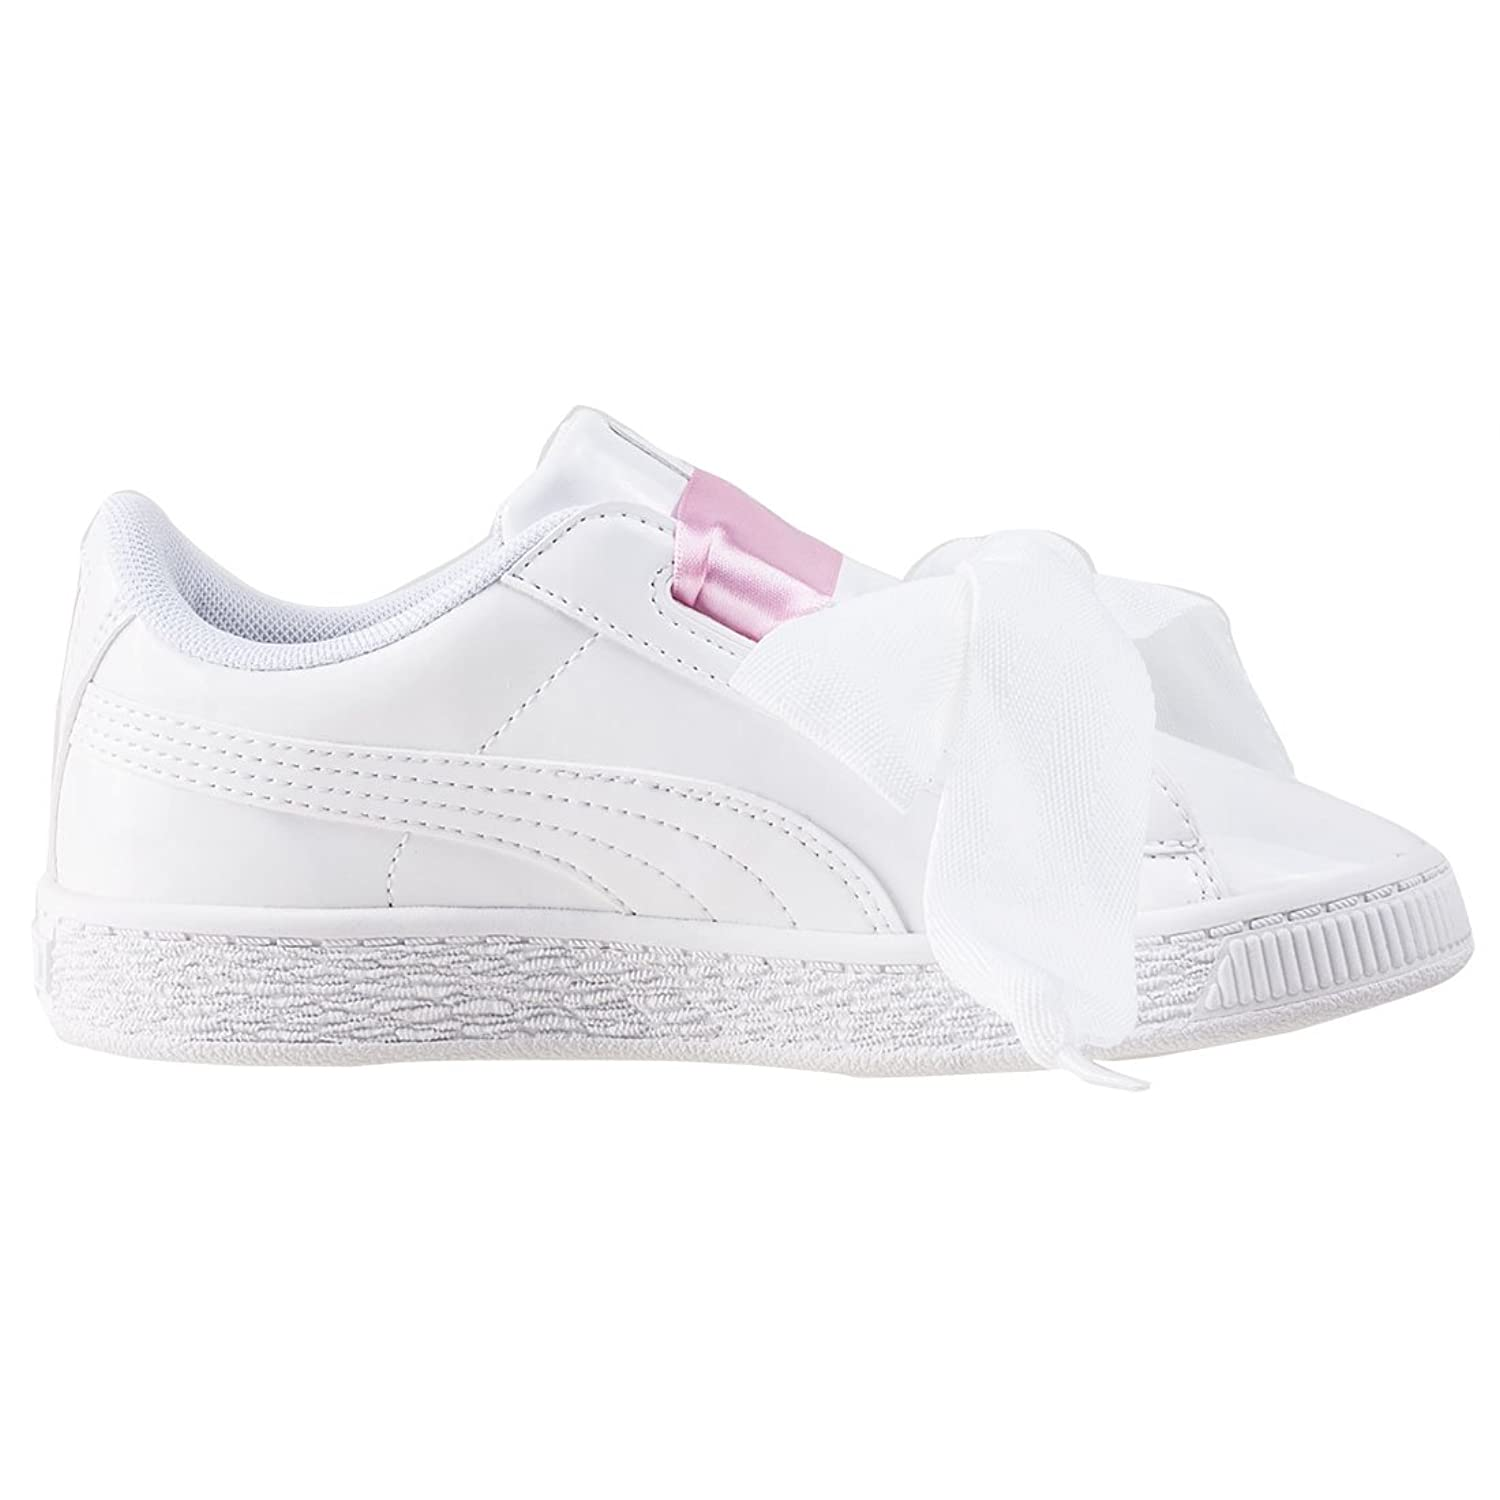 a319877fc2ac Sneakers Basses Fille Puma Basket Heart Patent PS Sneakers Basses ...